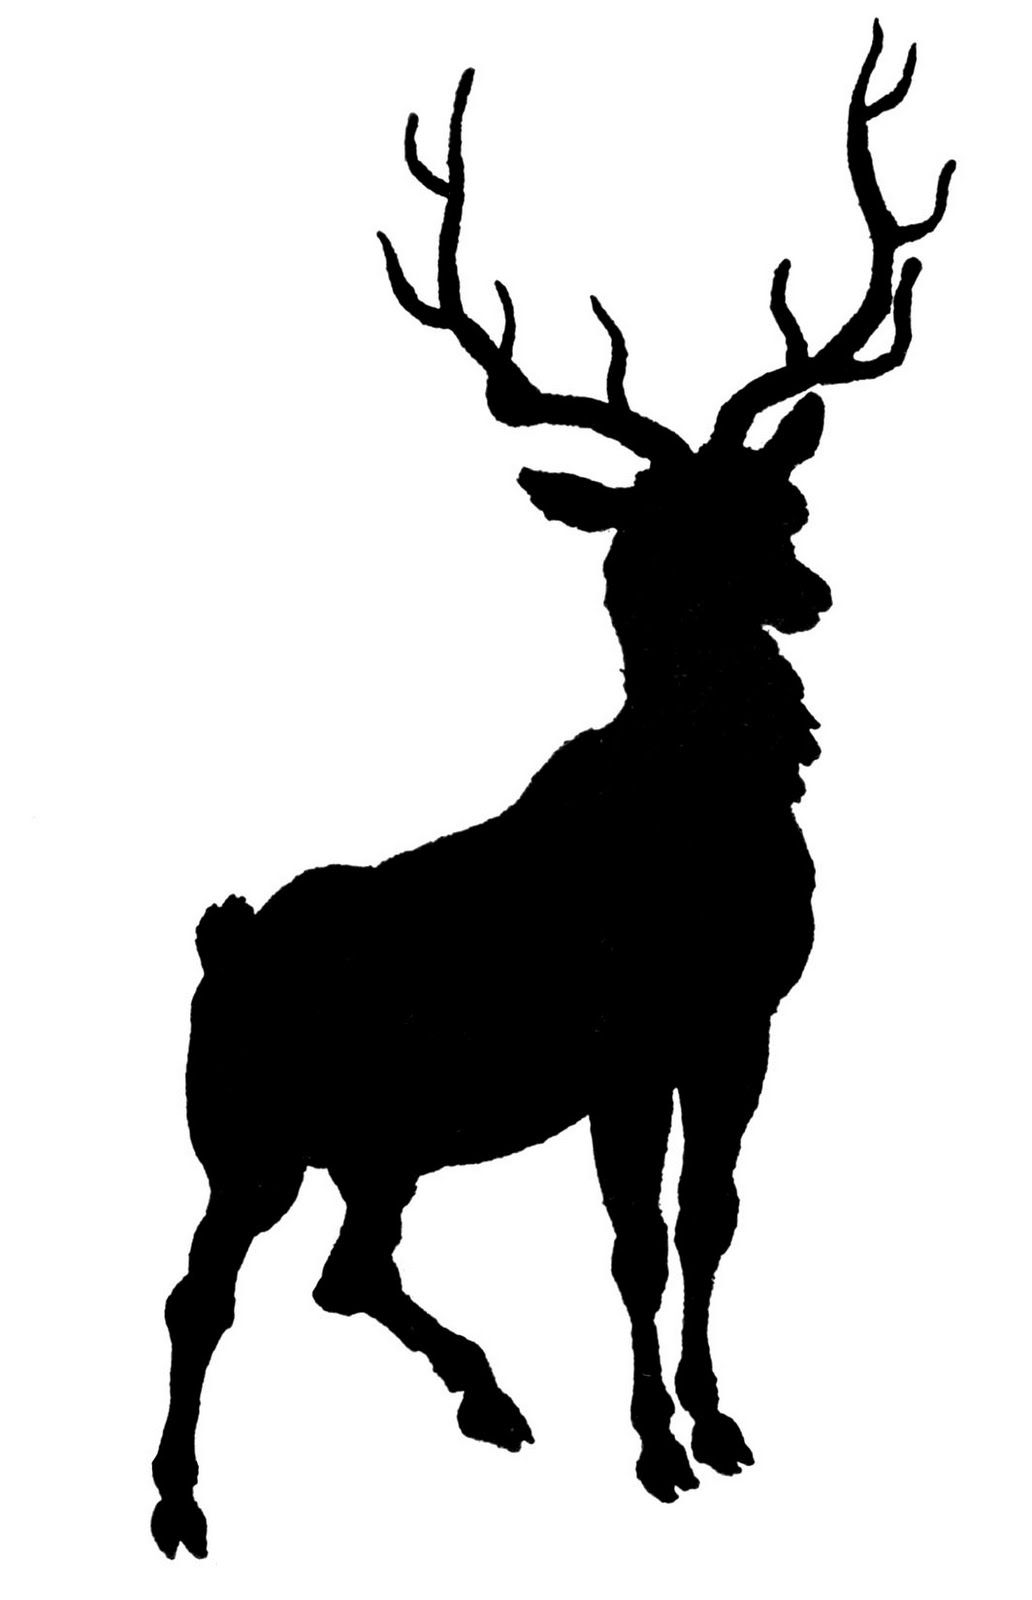 vintage clip art deer with antlers silhouette graphics fairy rh pinterest com Whitetail Deer Clip Art Deer Clip Art Black and White